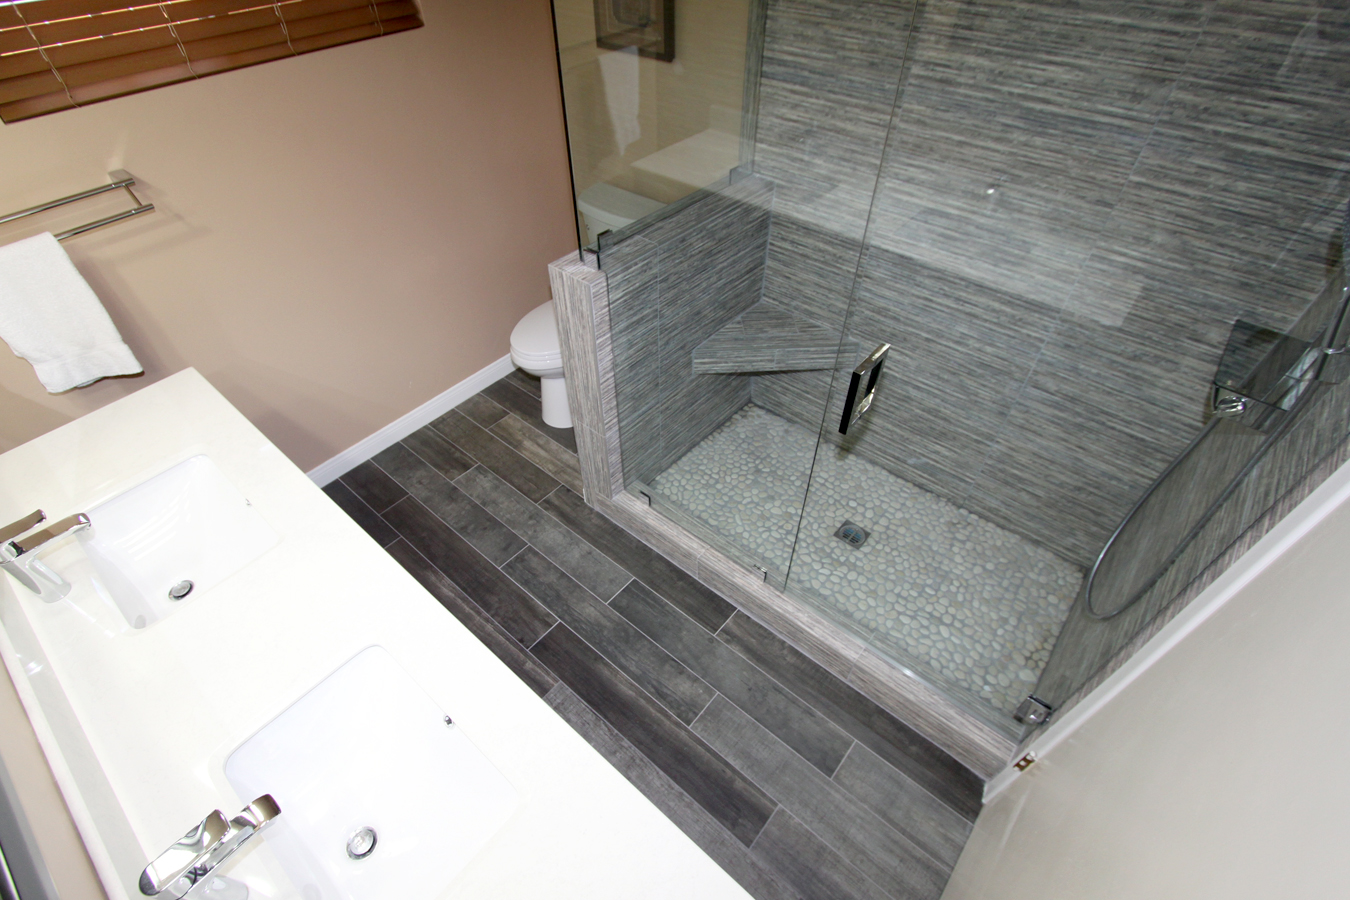 Portfolio los angeles tile contractors 323 662 1011 for Los angeles bathroom remodeling contractor